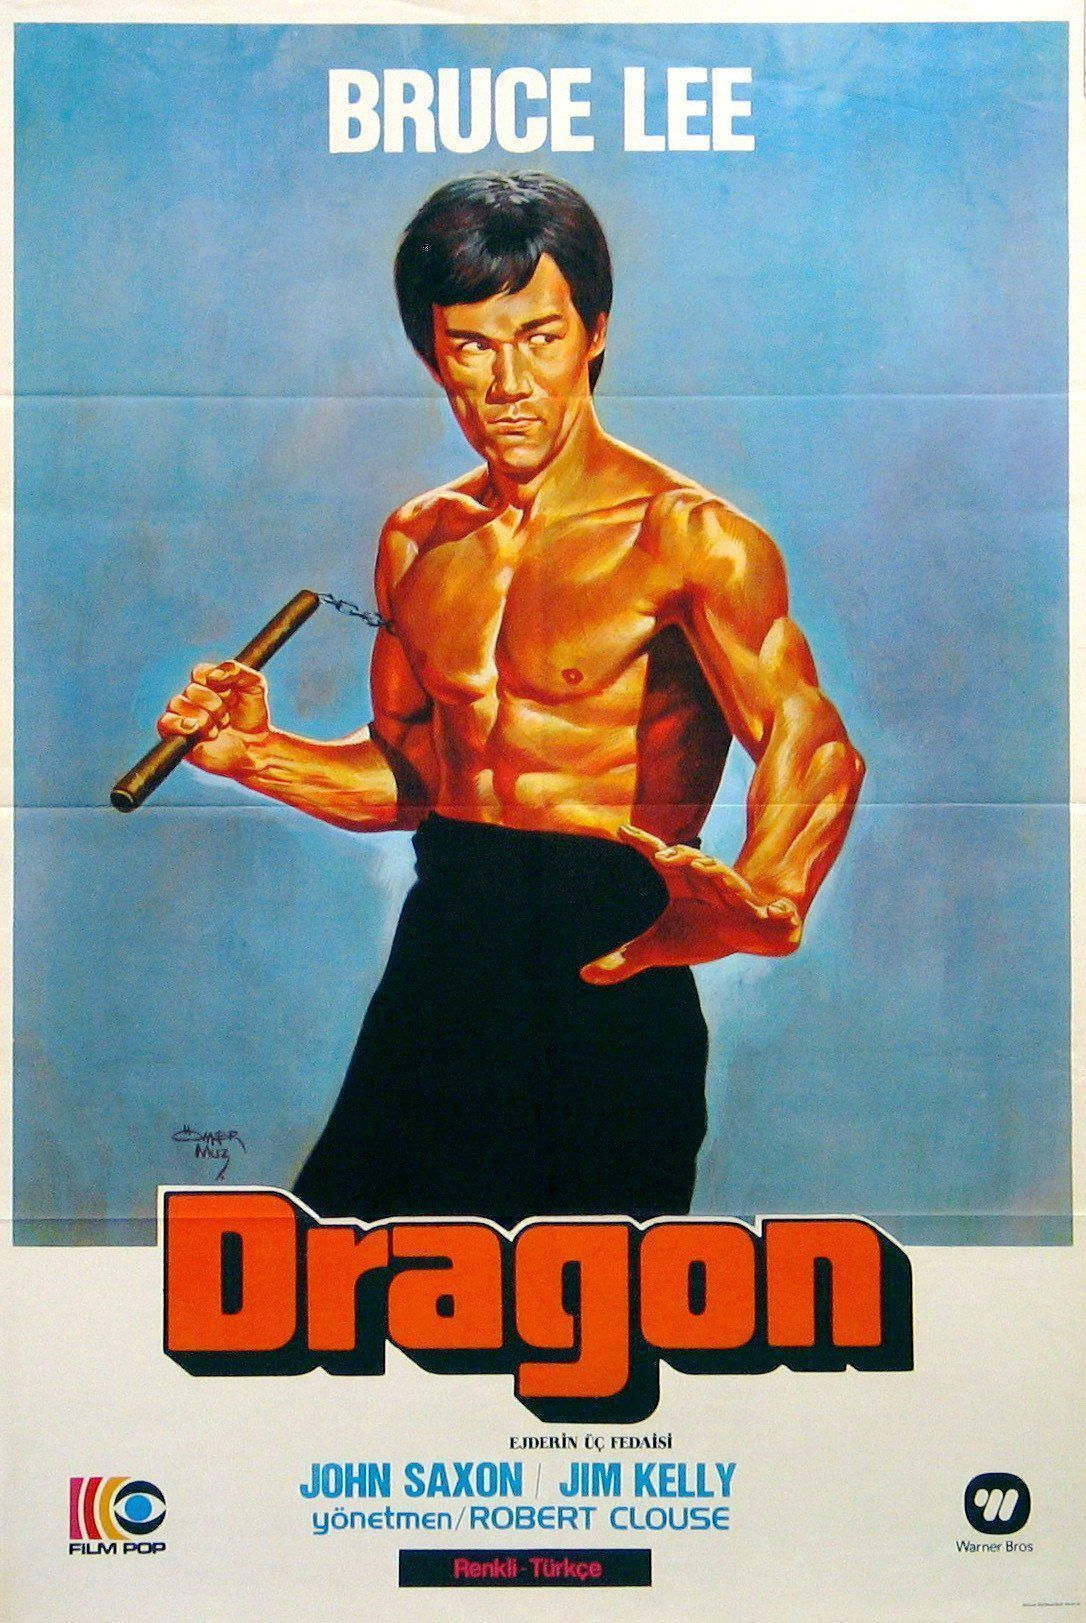 Bruce Lee Kung Fu Poster 24x36 inch rolled wall poster